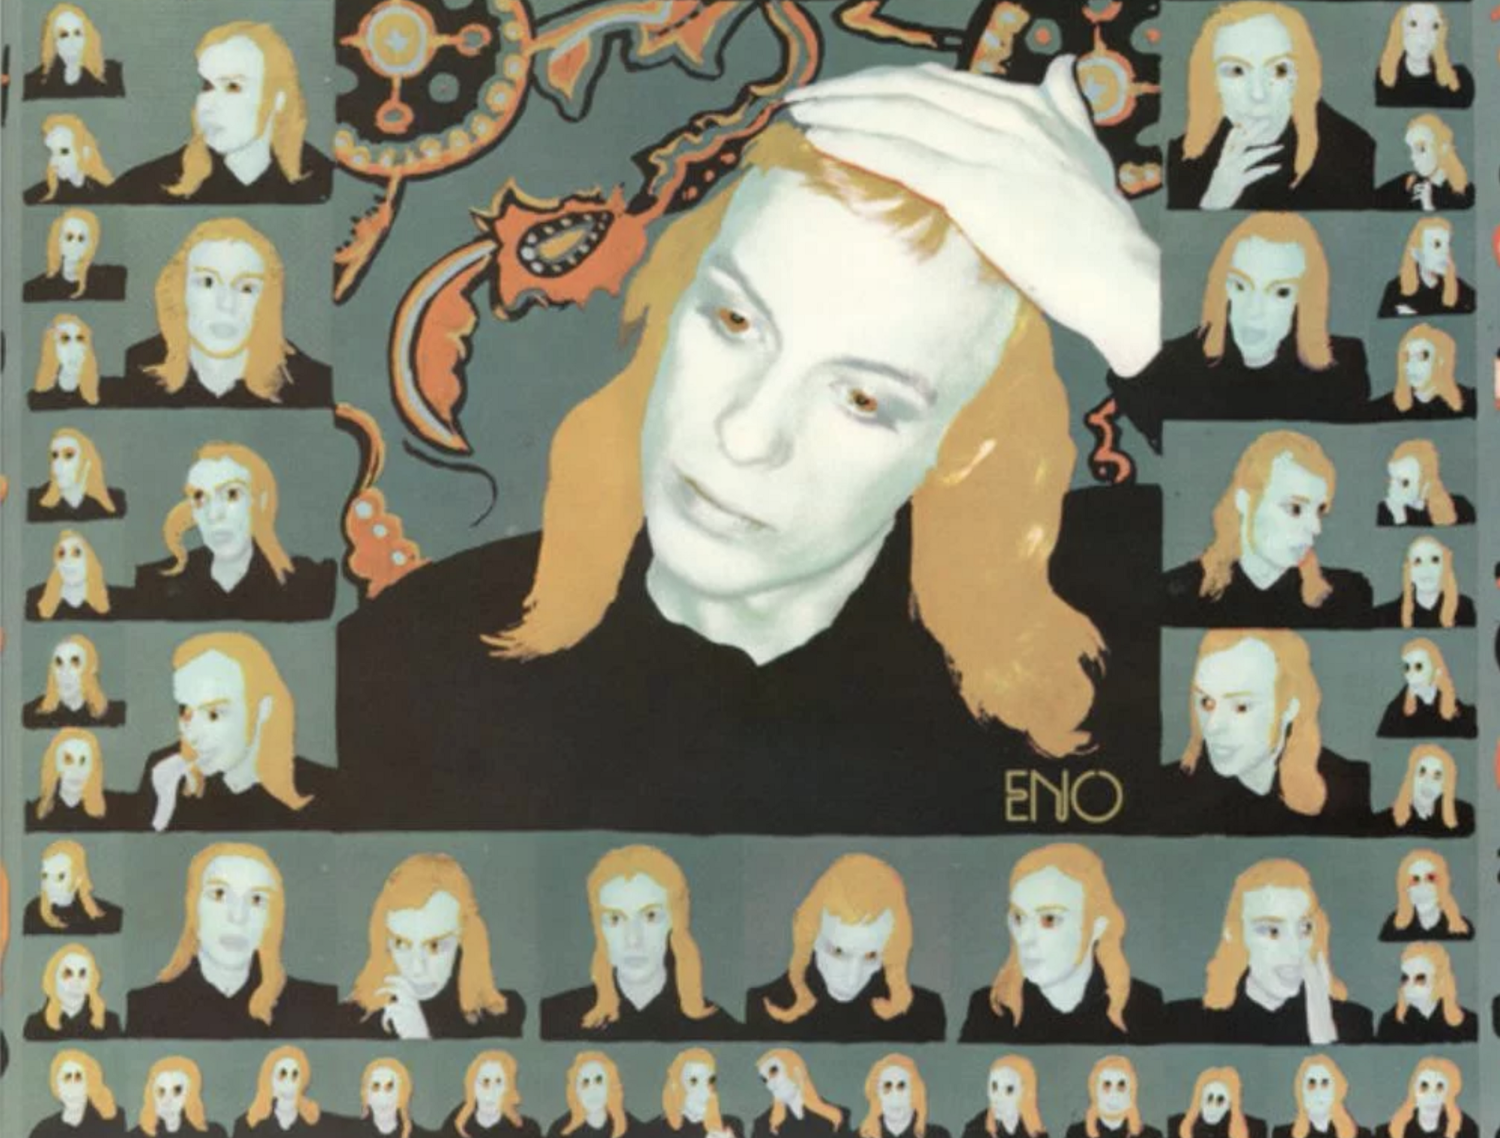 Music, Time and Long-Term Thinking: Brian Eno Expands the Vocabulary of HumanFeeling